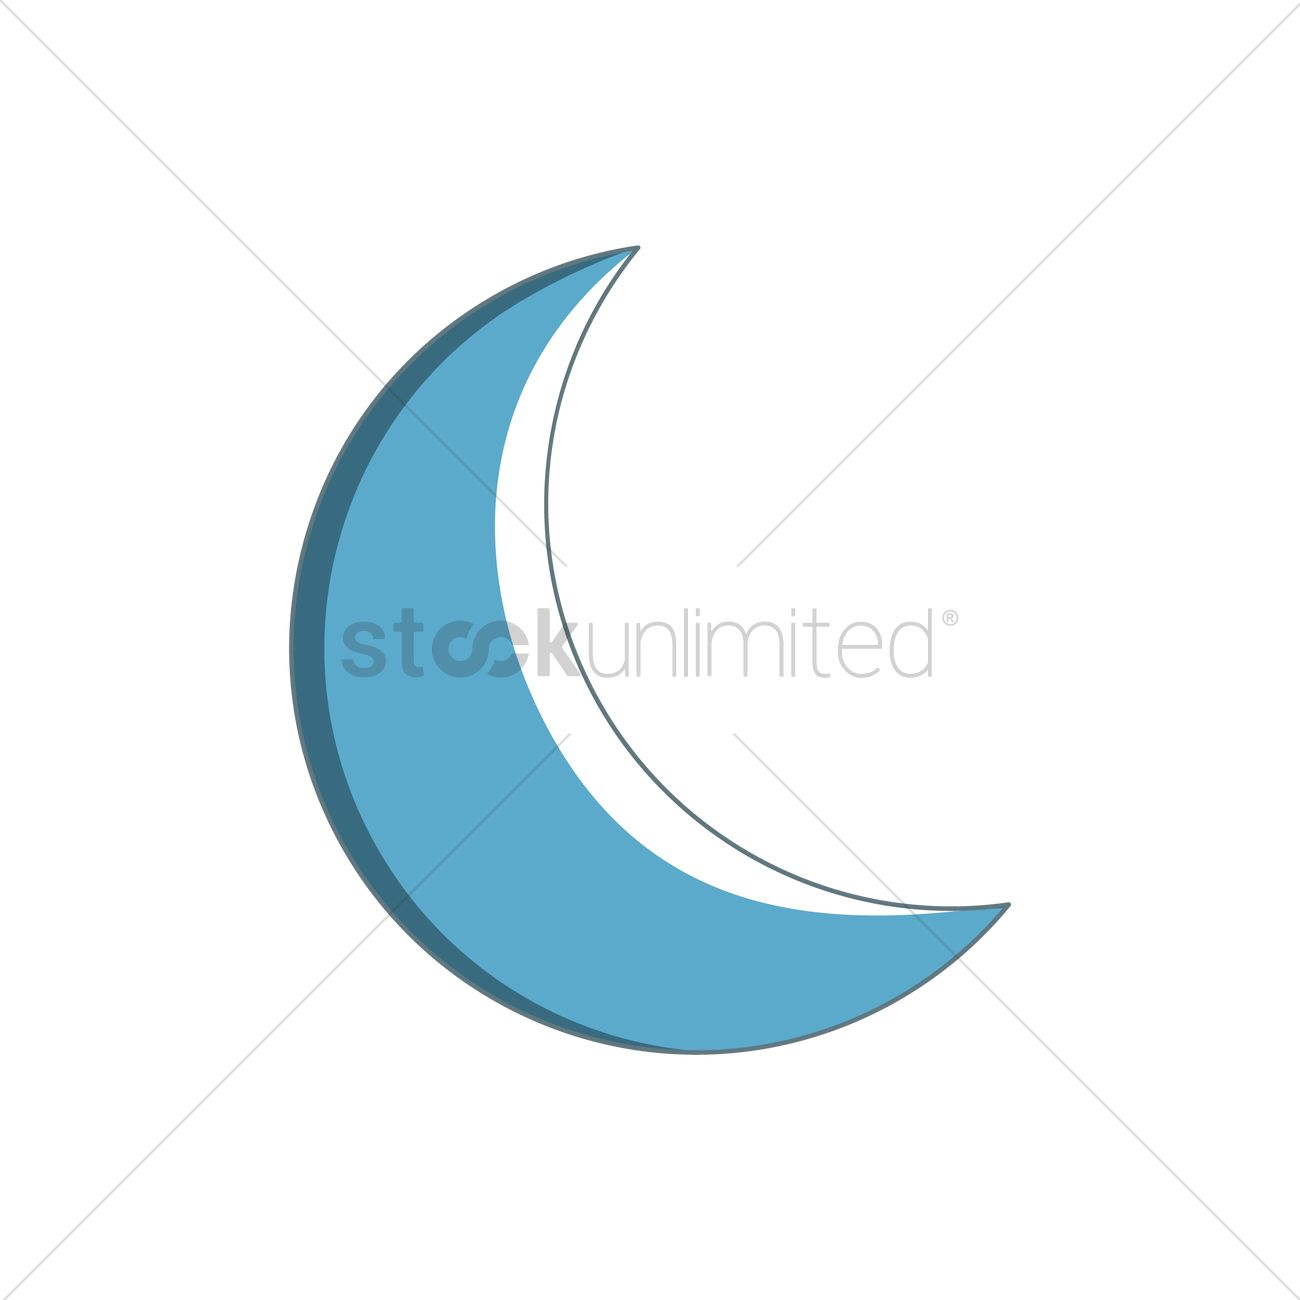 free crescent moon vector image 1364755 stockunlimited stockunlimited